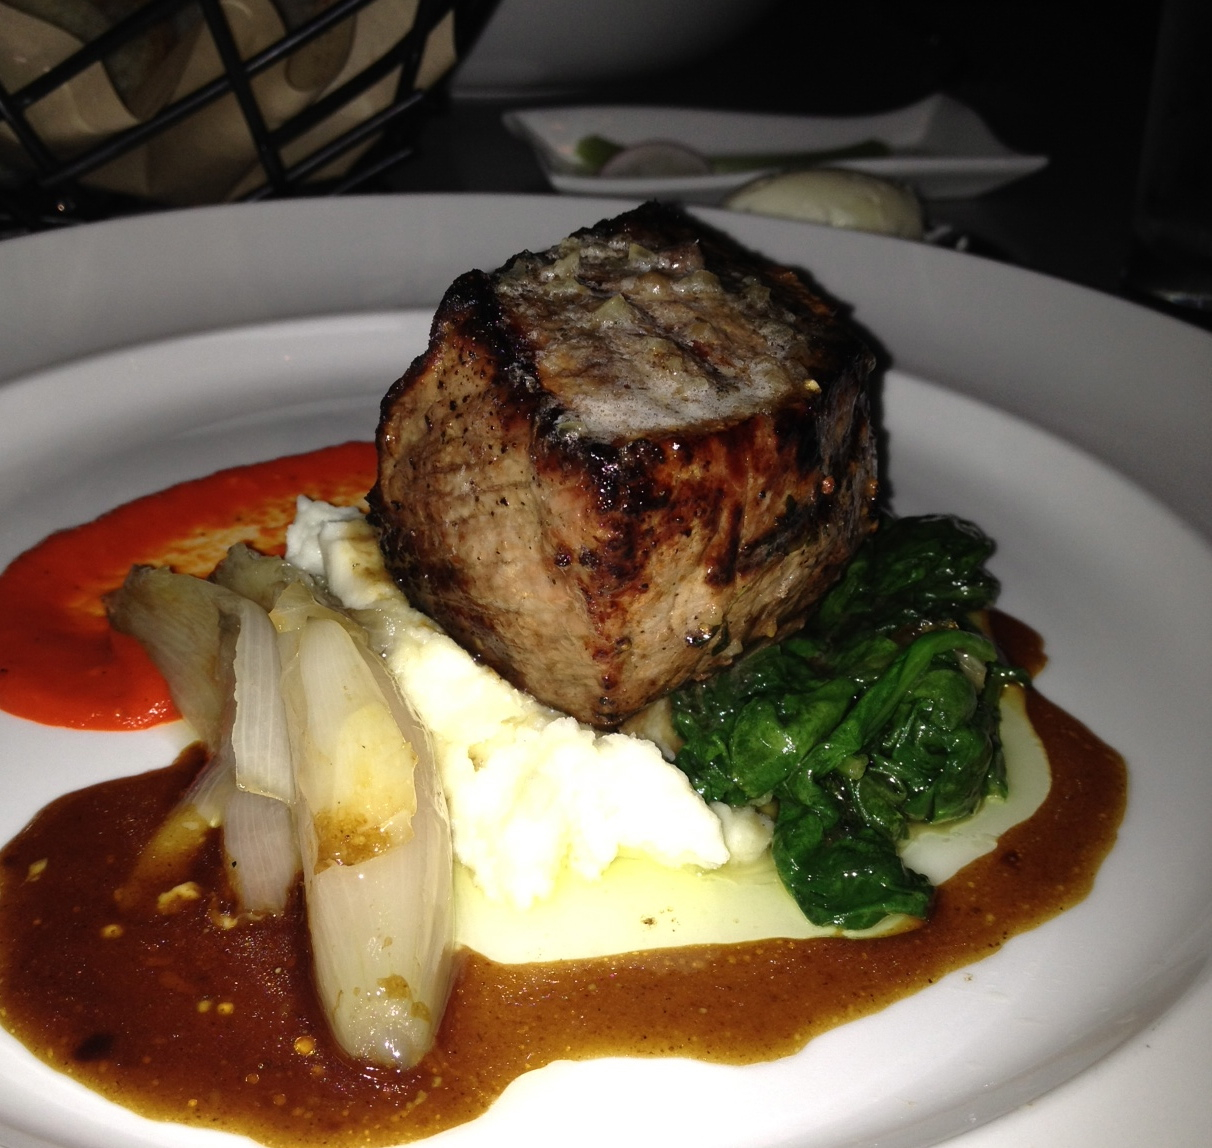 ... shallot confit, bone marrow butter and sauteed spinach. I practically